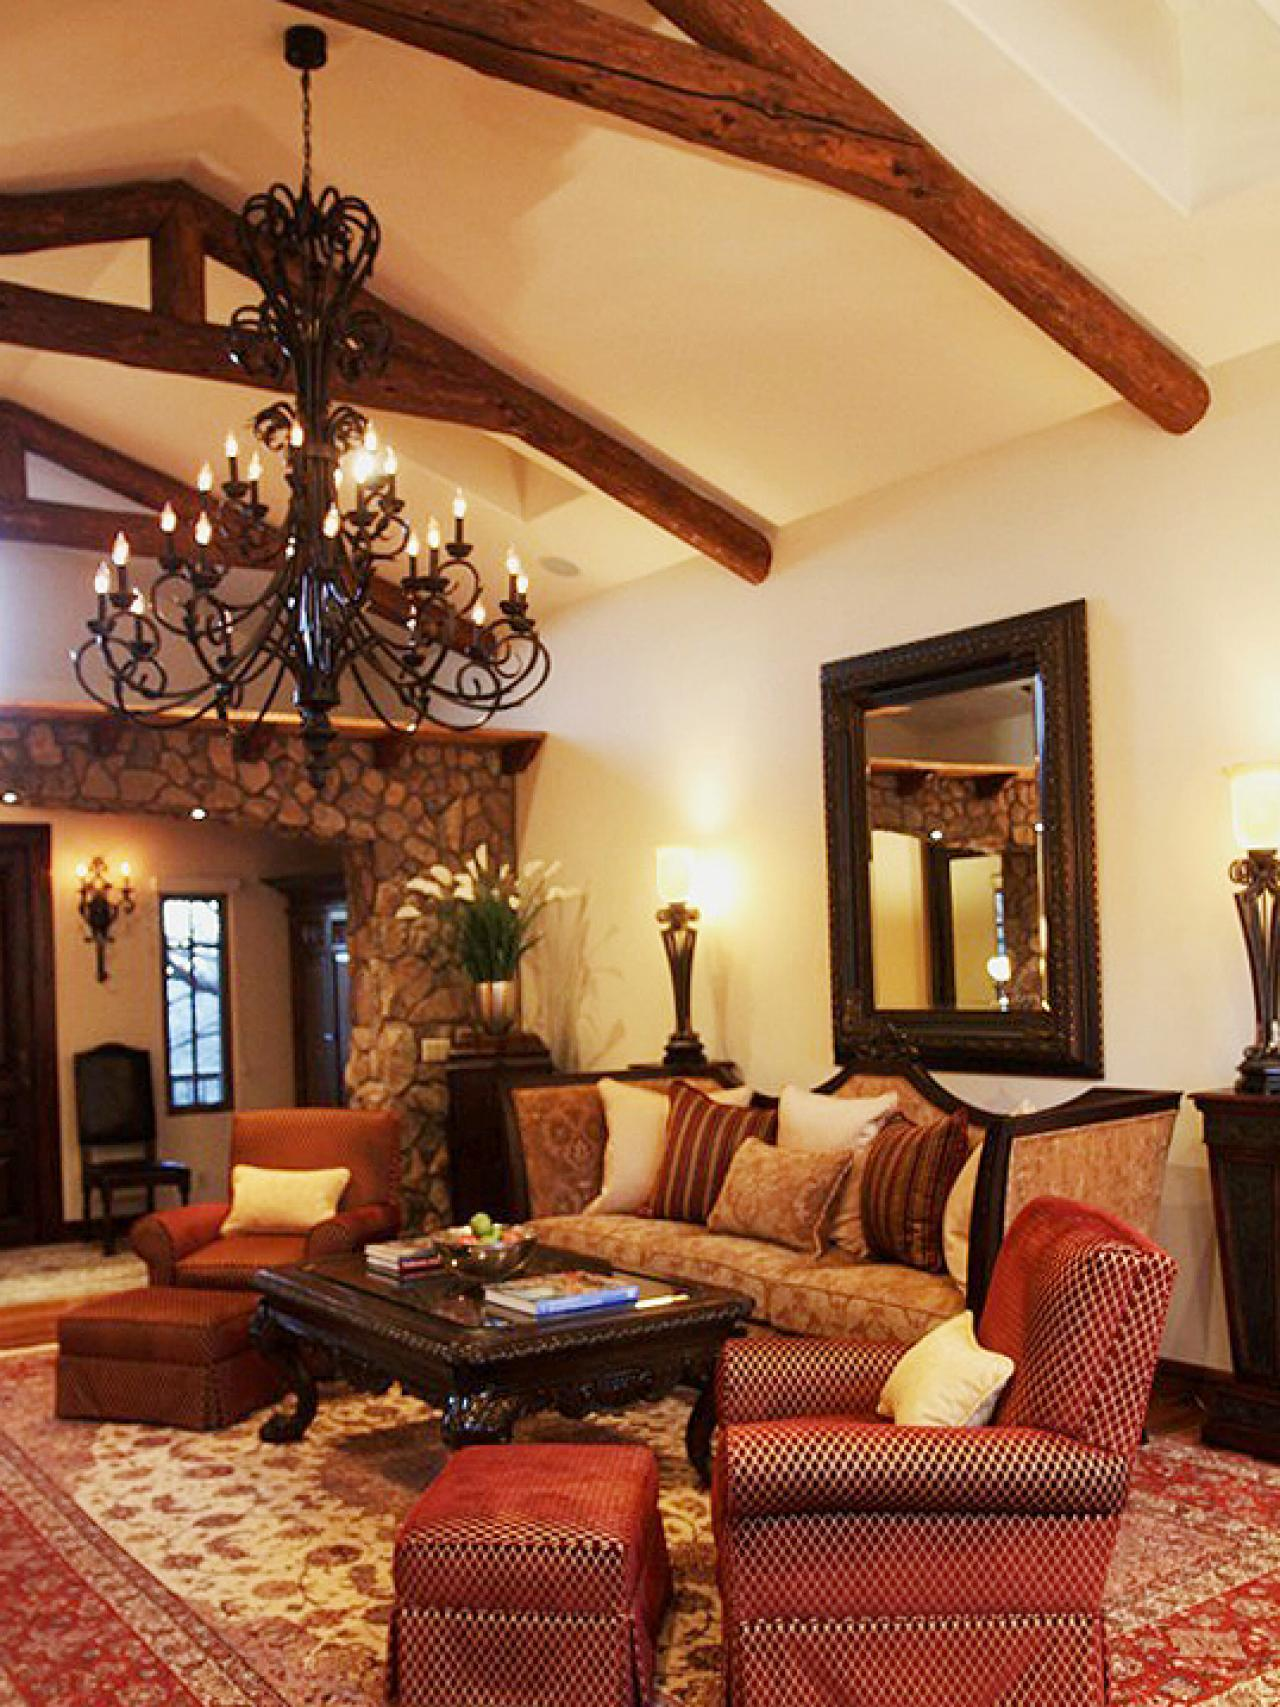 Elegant Spanish Living Room With Exposing Beams Classic Chandelier Old  Style Of Sofas And Big Mirror Part 11